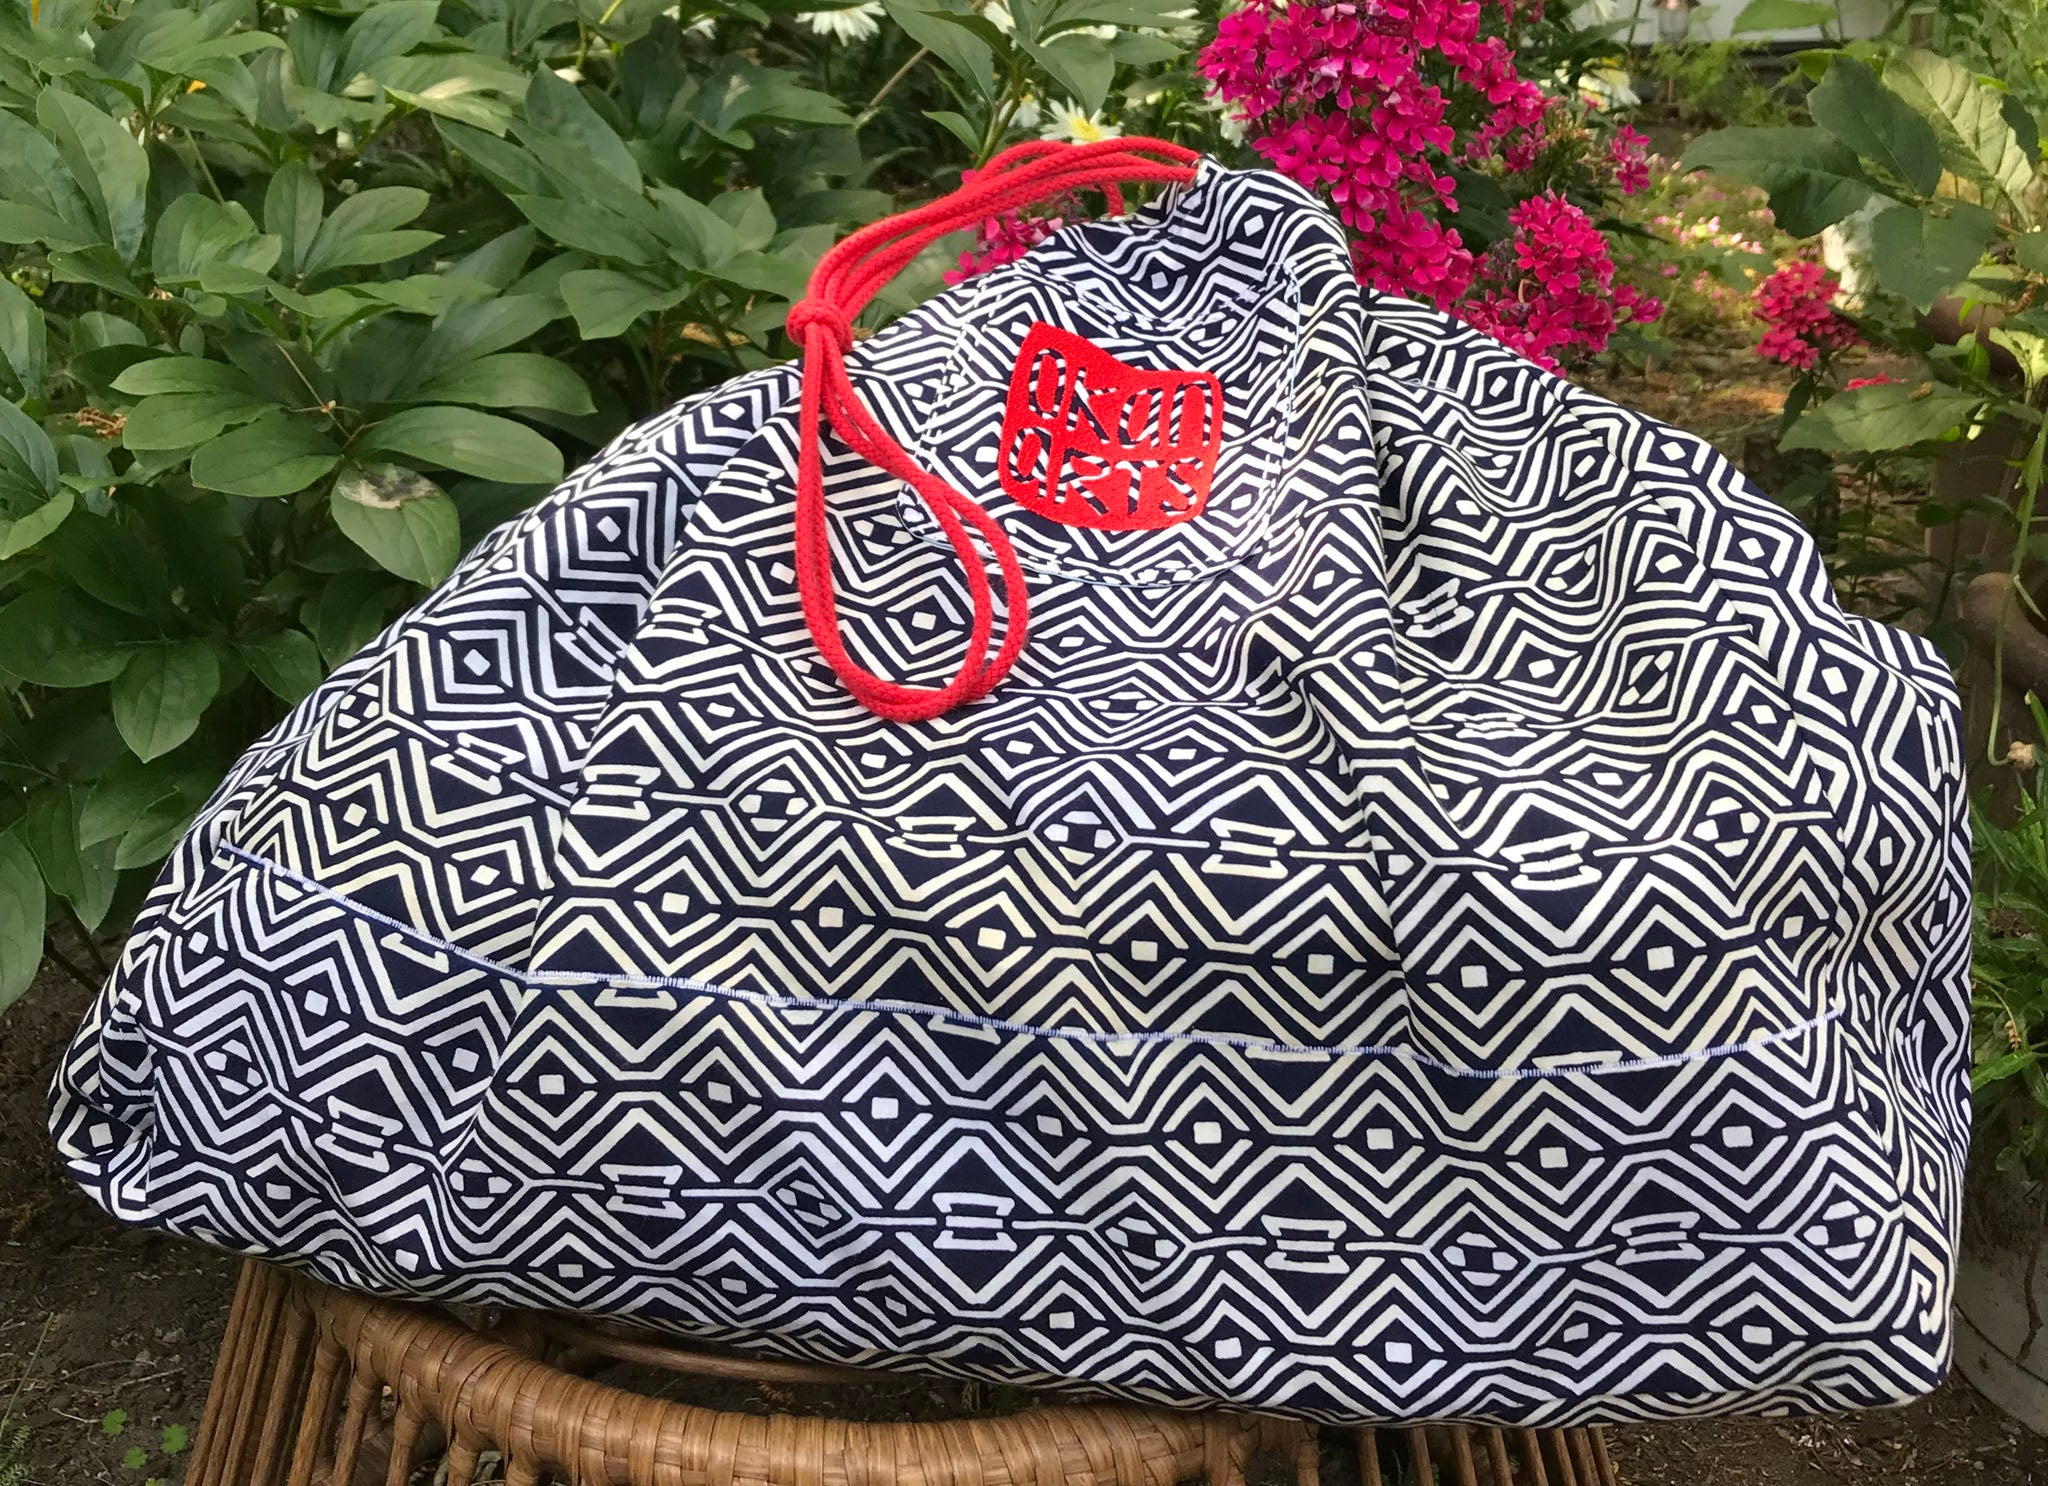 Rice-bag-style sack for the delivery of Indiglow, a king-size quilt by Patricia Belyea